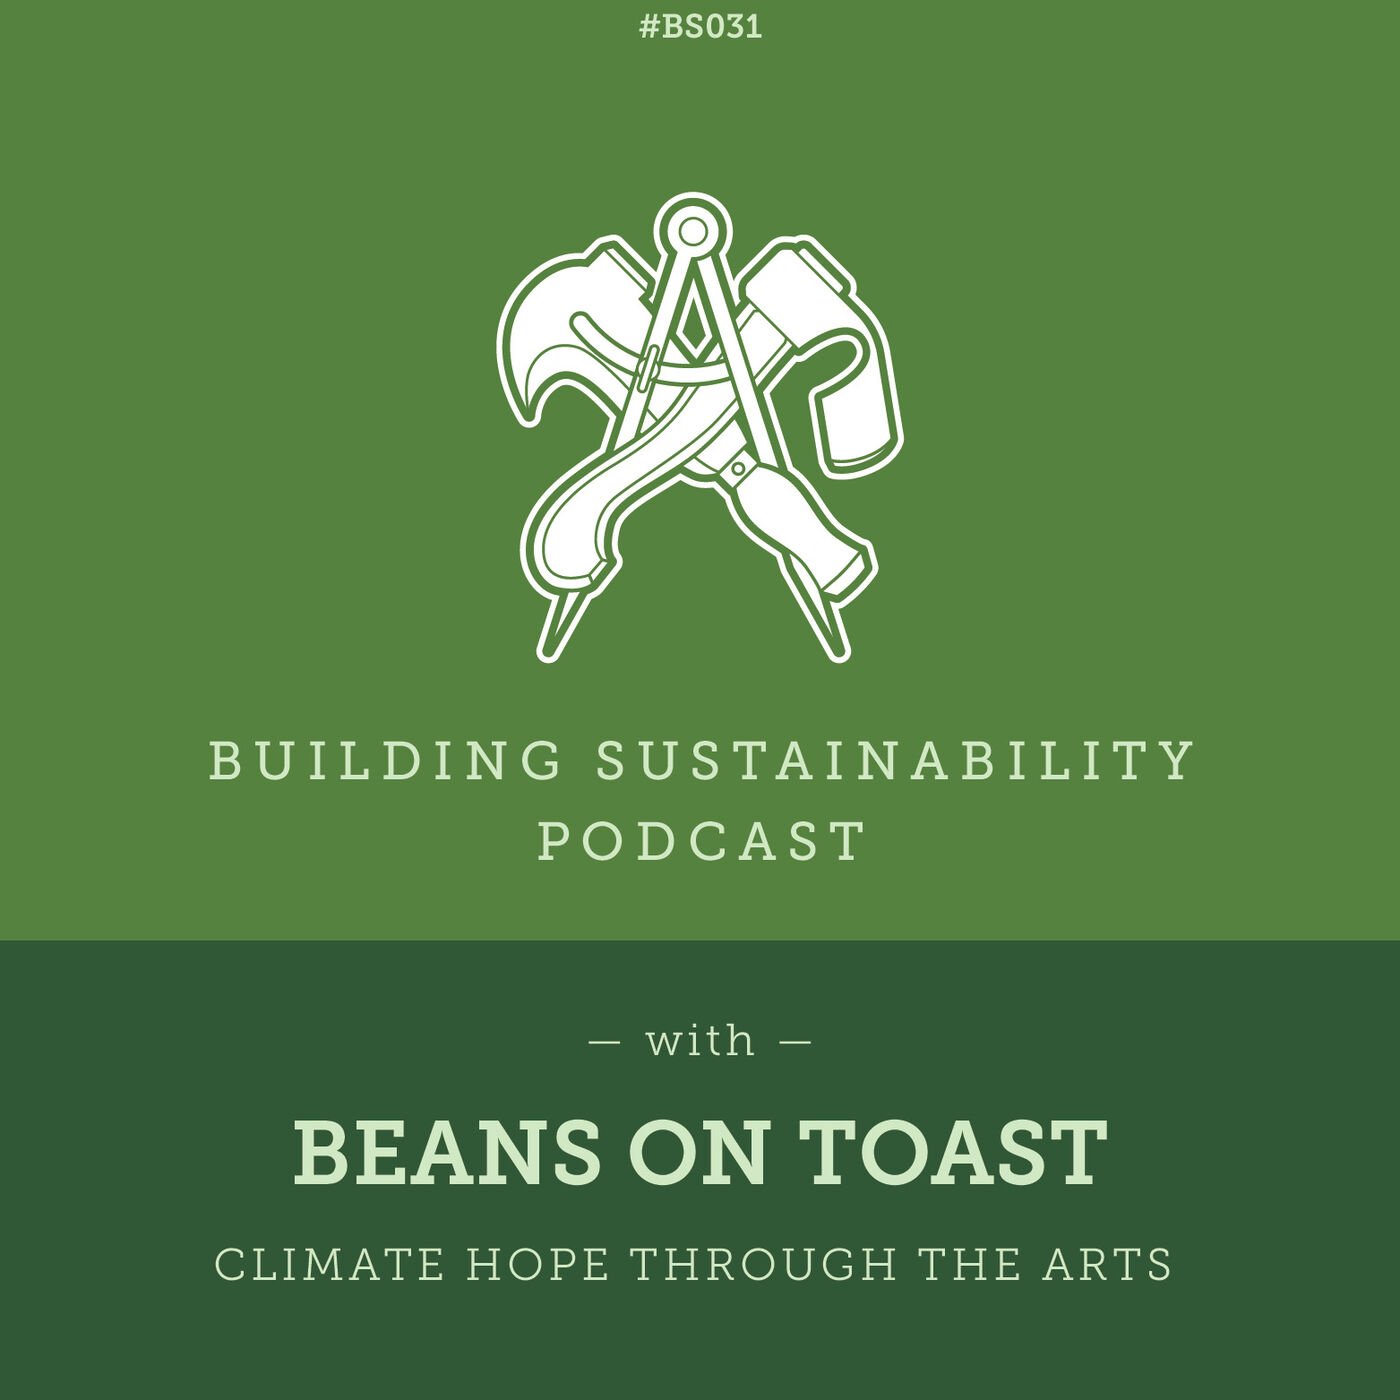 Climate hope through the arts - Beans On Toast - BS031